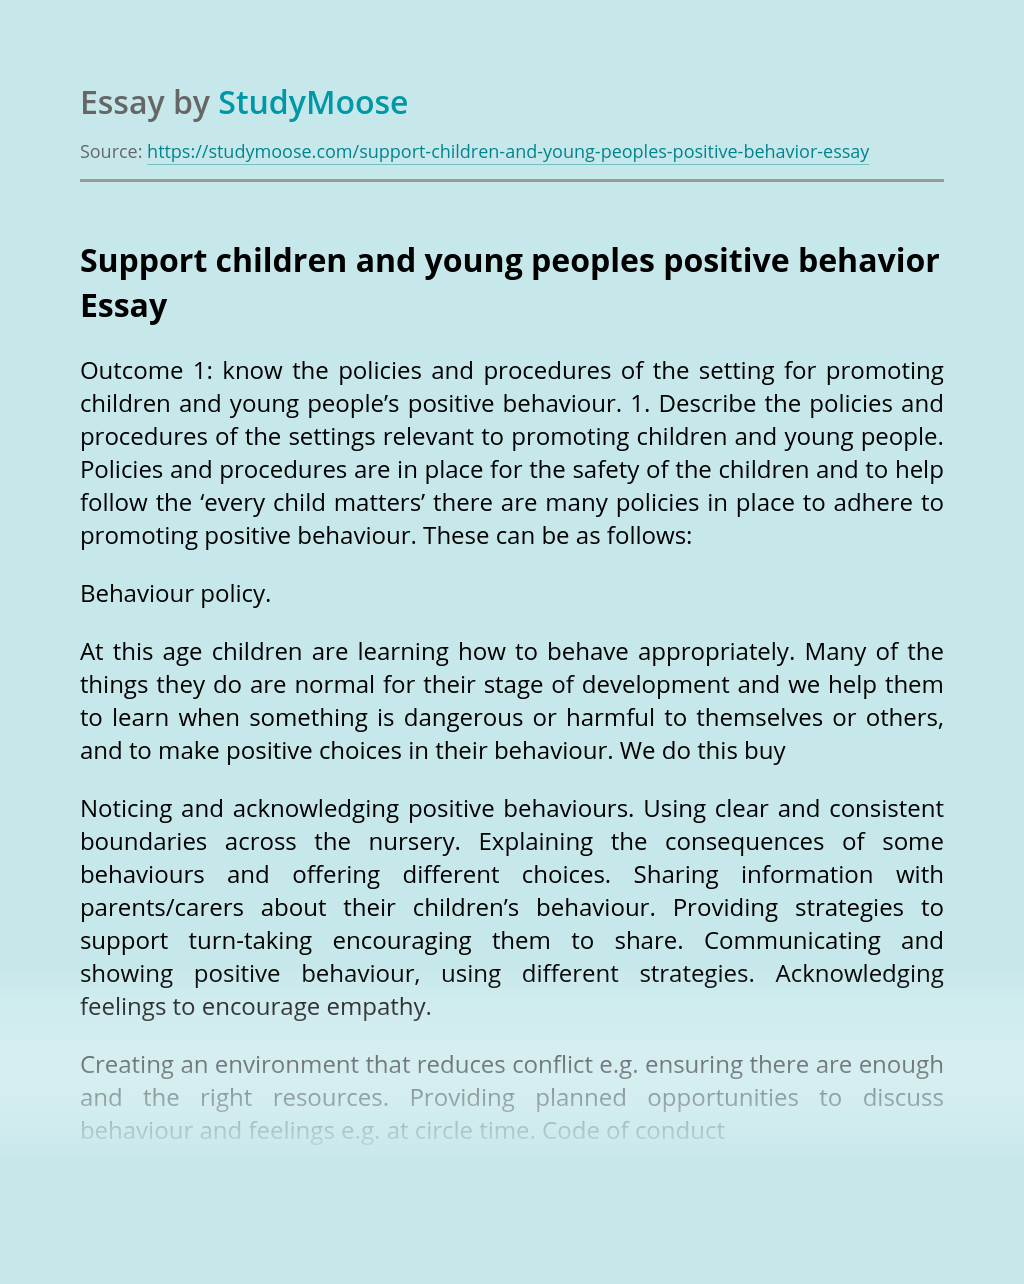 Support children and young peoples positive behavior